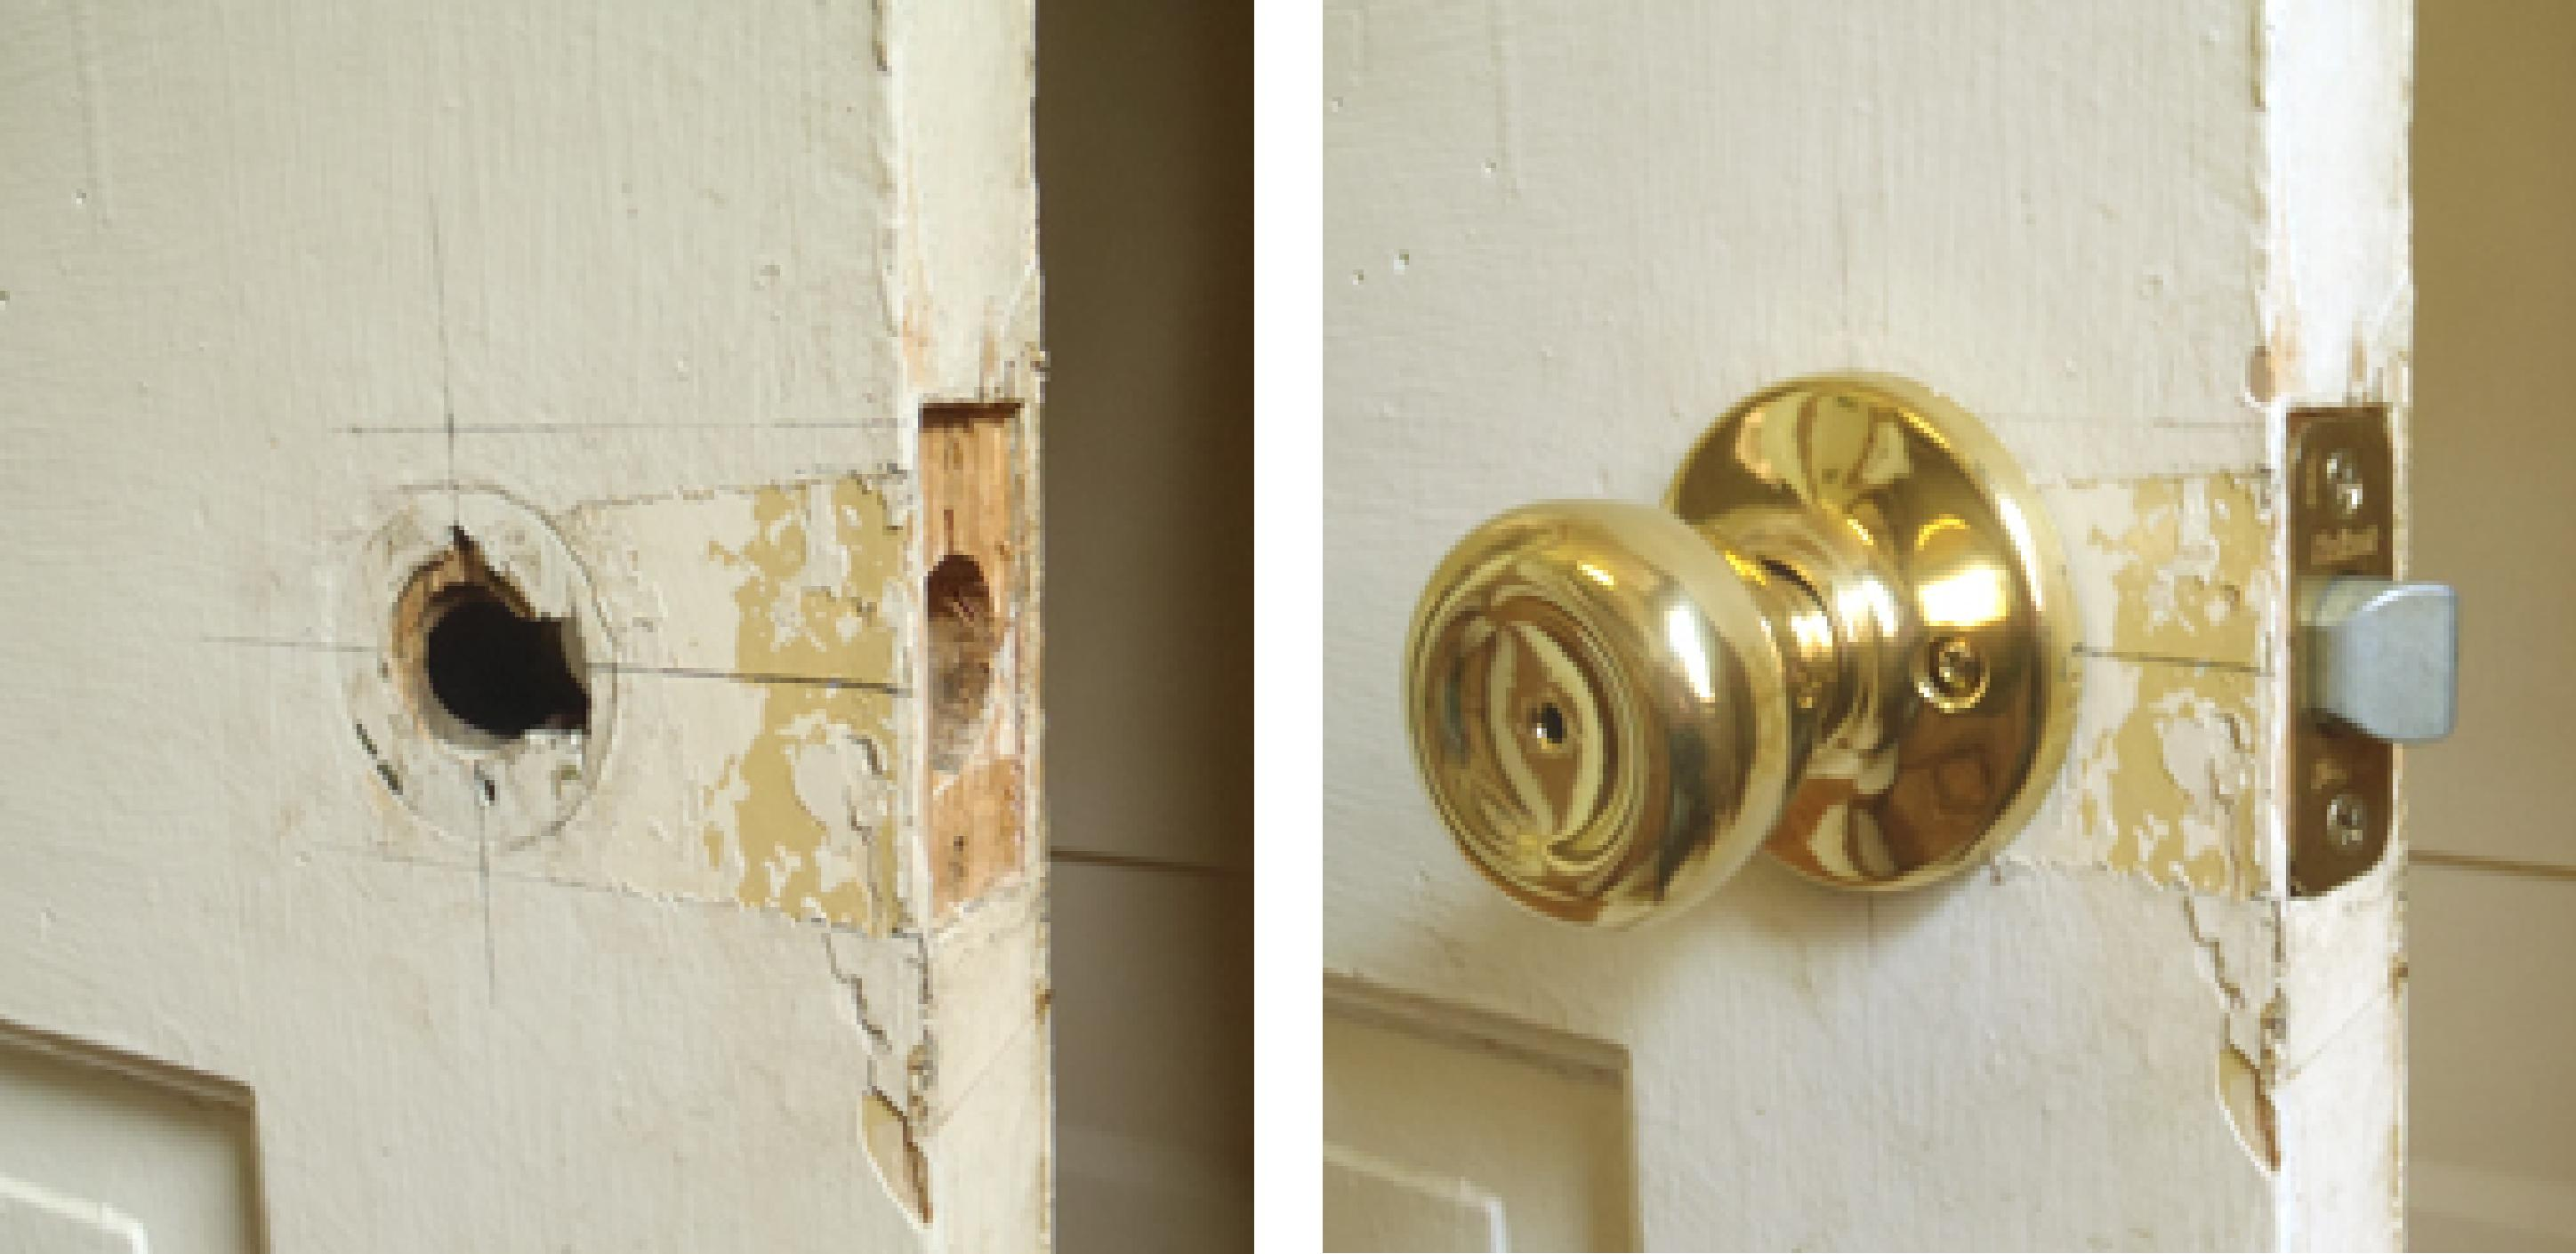 Replace Antique Door Knob With Modern Knobu003c (refinishing To Be Done By  Client)